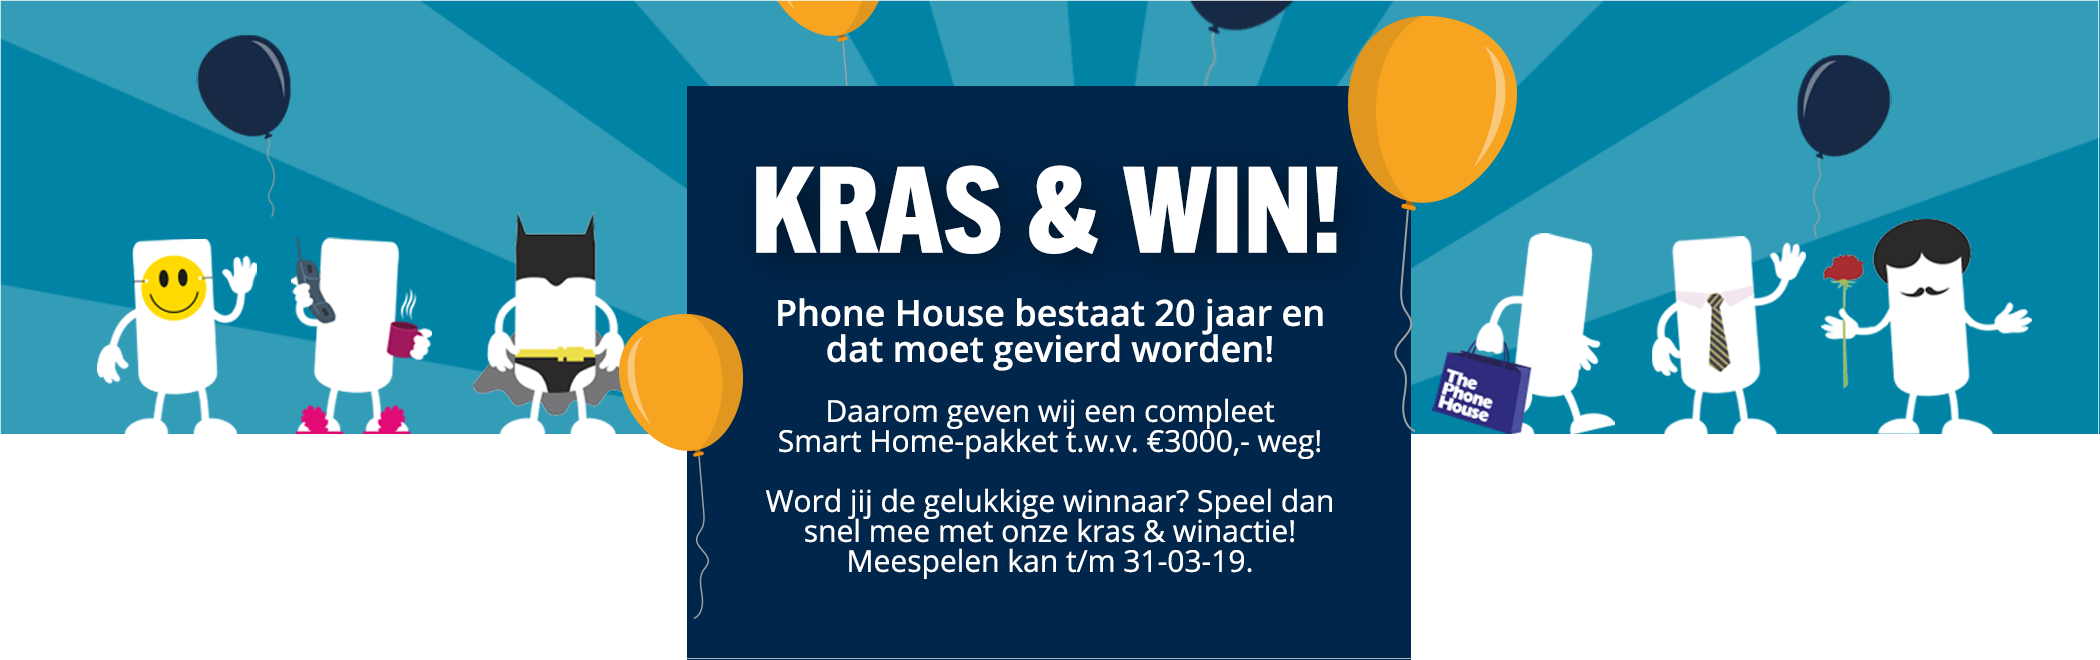 Phone House 20 jaar!